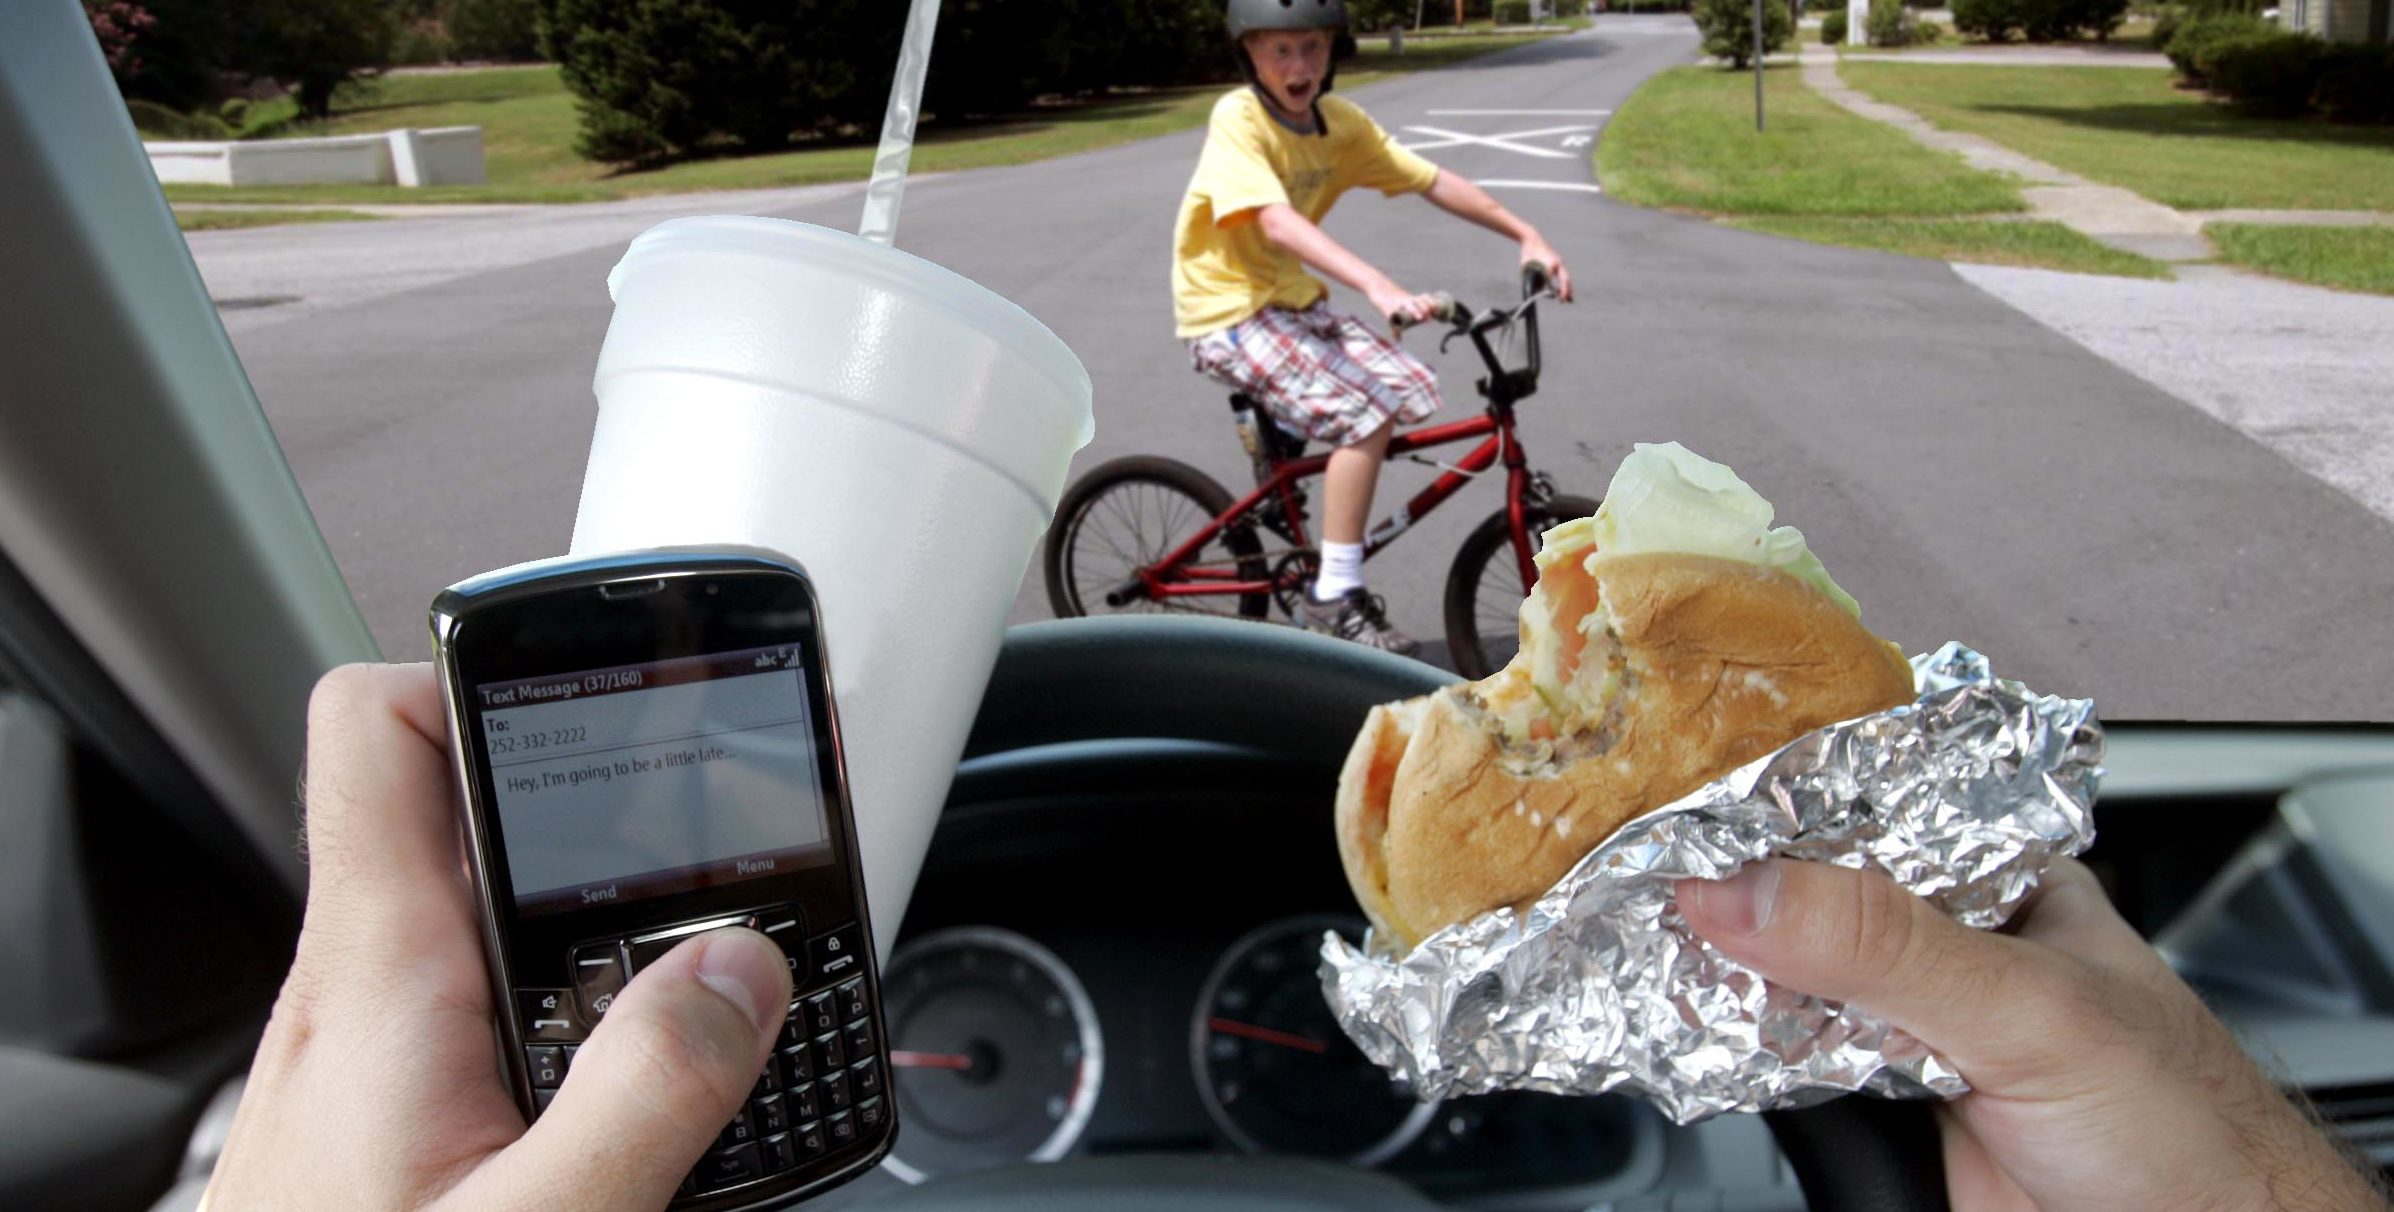 distracted driving - eating, drinking, cell phone